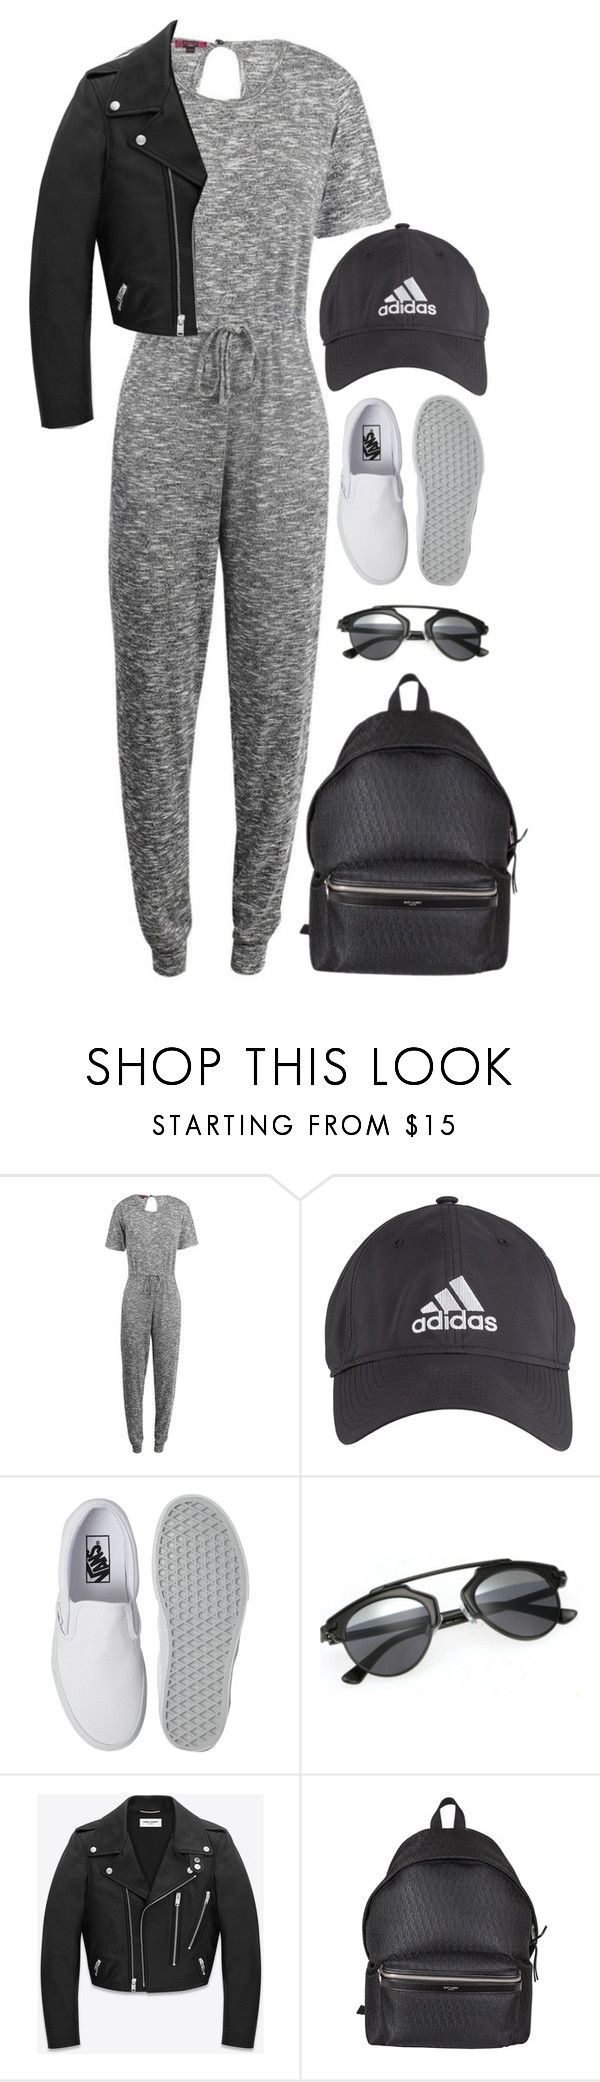 """Sporty"" by luvsassyselfie ❤ liked on Polyvore featuring adidas, Vans, Yves Saint Laurent, black and gray"